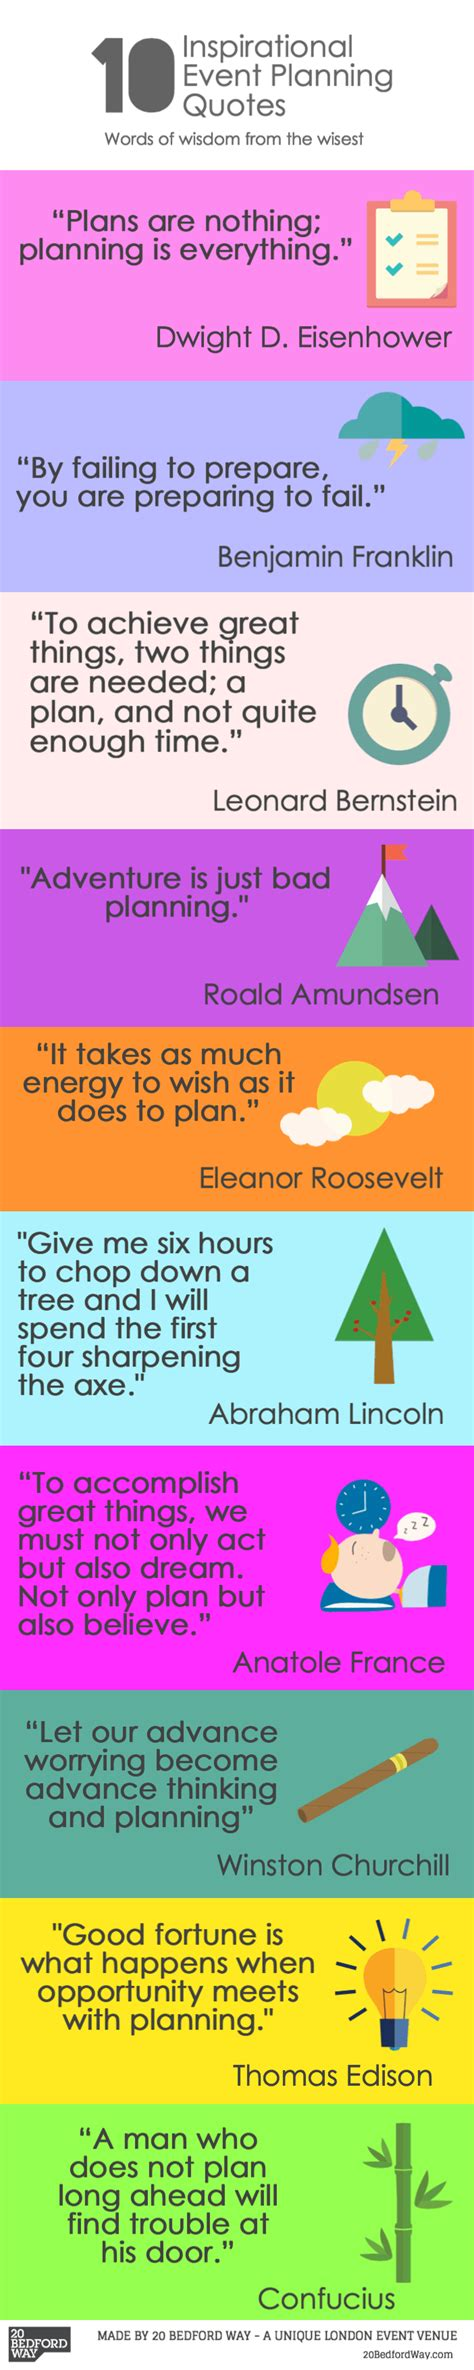 inspirational event planning quotes inspiring quotes